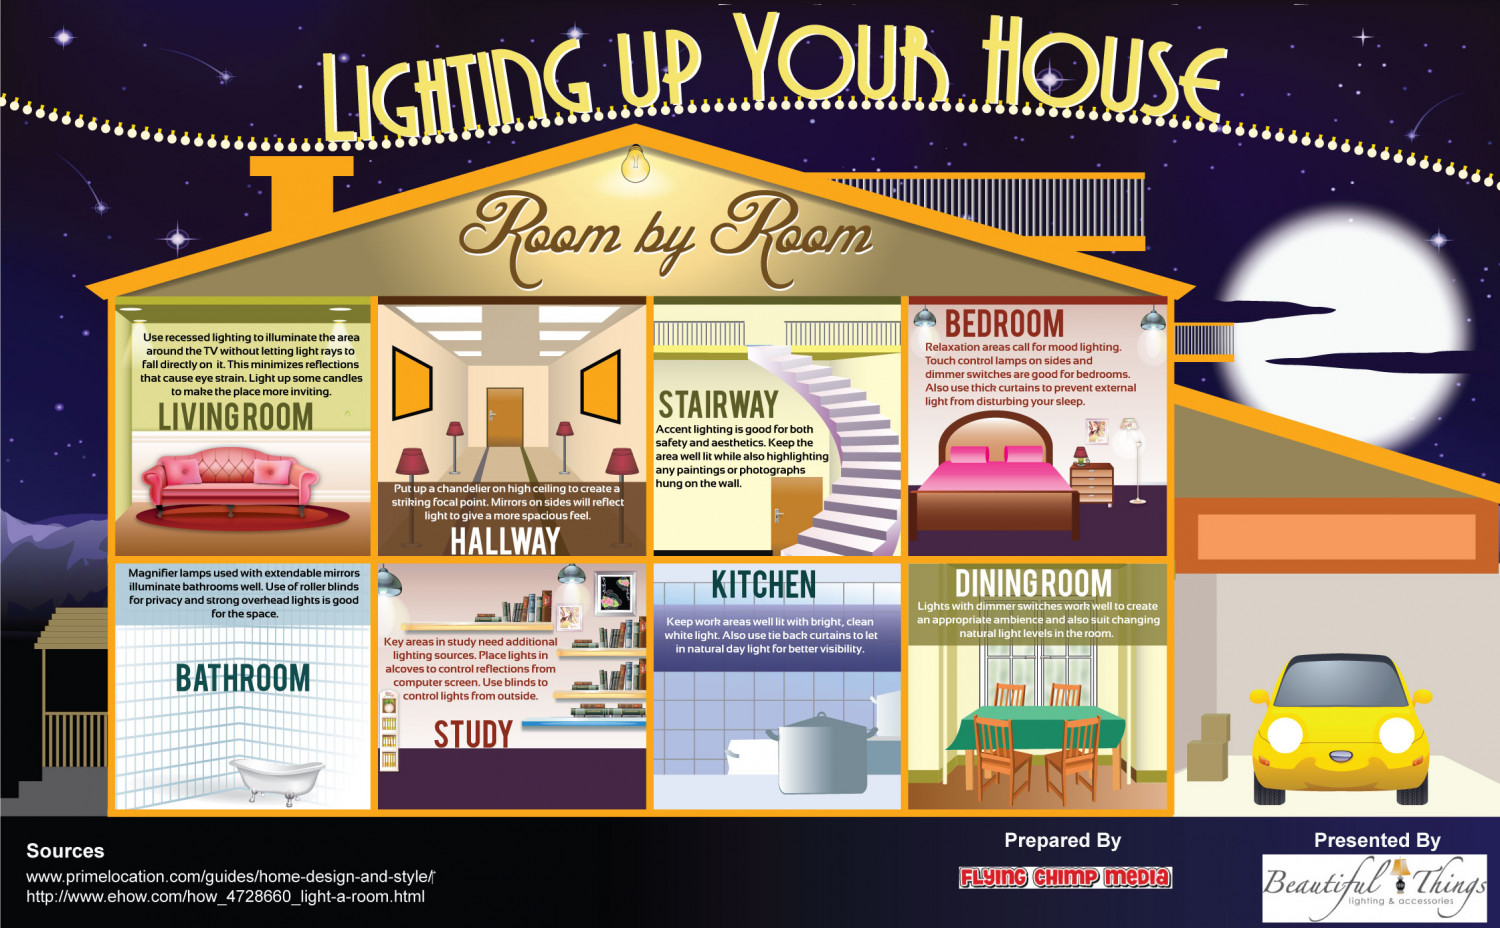 Lighting Up Your House Infographic